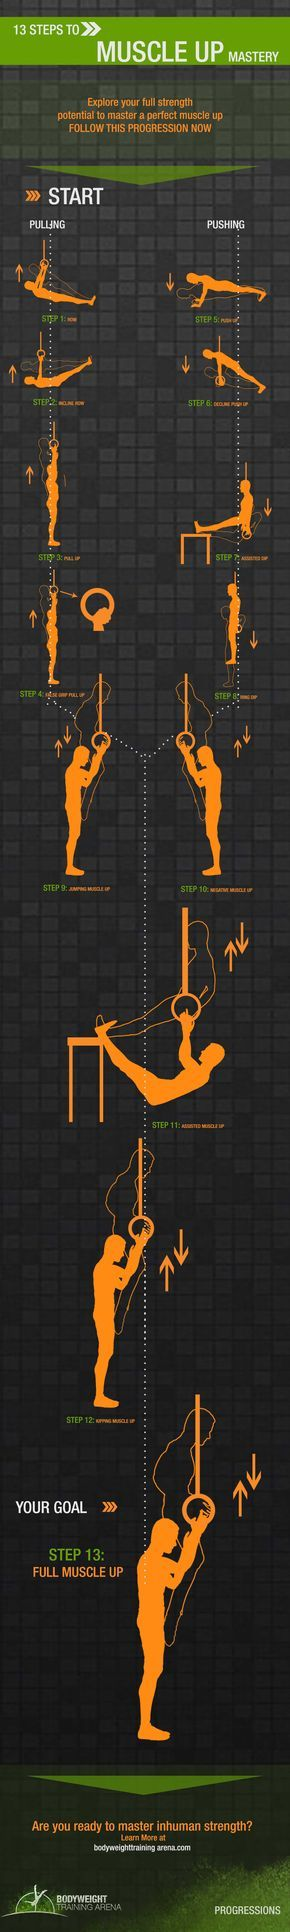 Well 15.3 sure showed us that muscle-ups are a big problem for alot of CrossFit athletes. But just because you can't do them now, doesn't mean you won't be able to figure out how to do them. This infographic below is one of the better ones I've seen for muscle up progressions. Take a look …